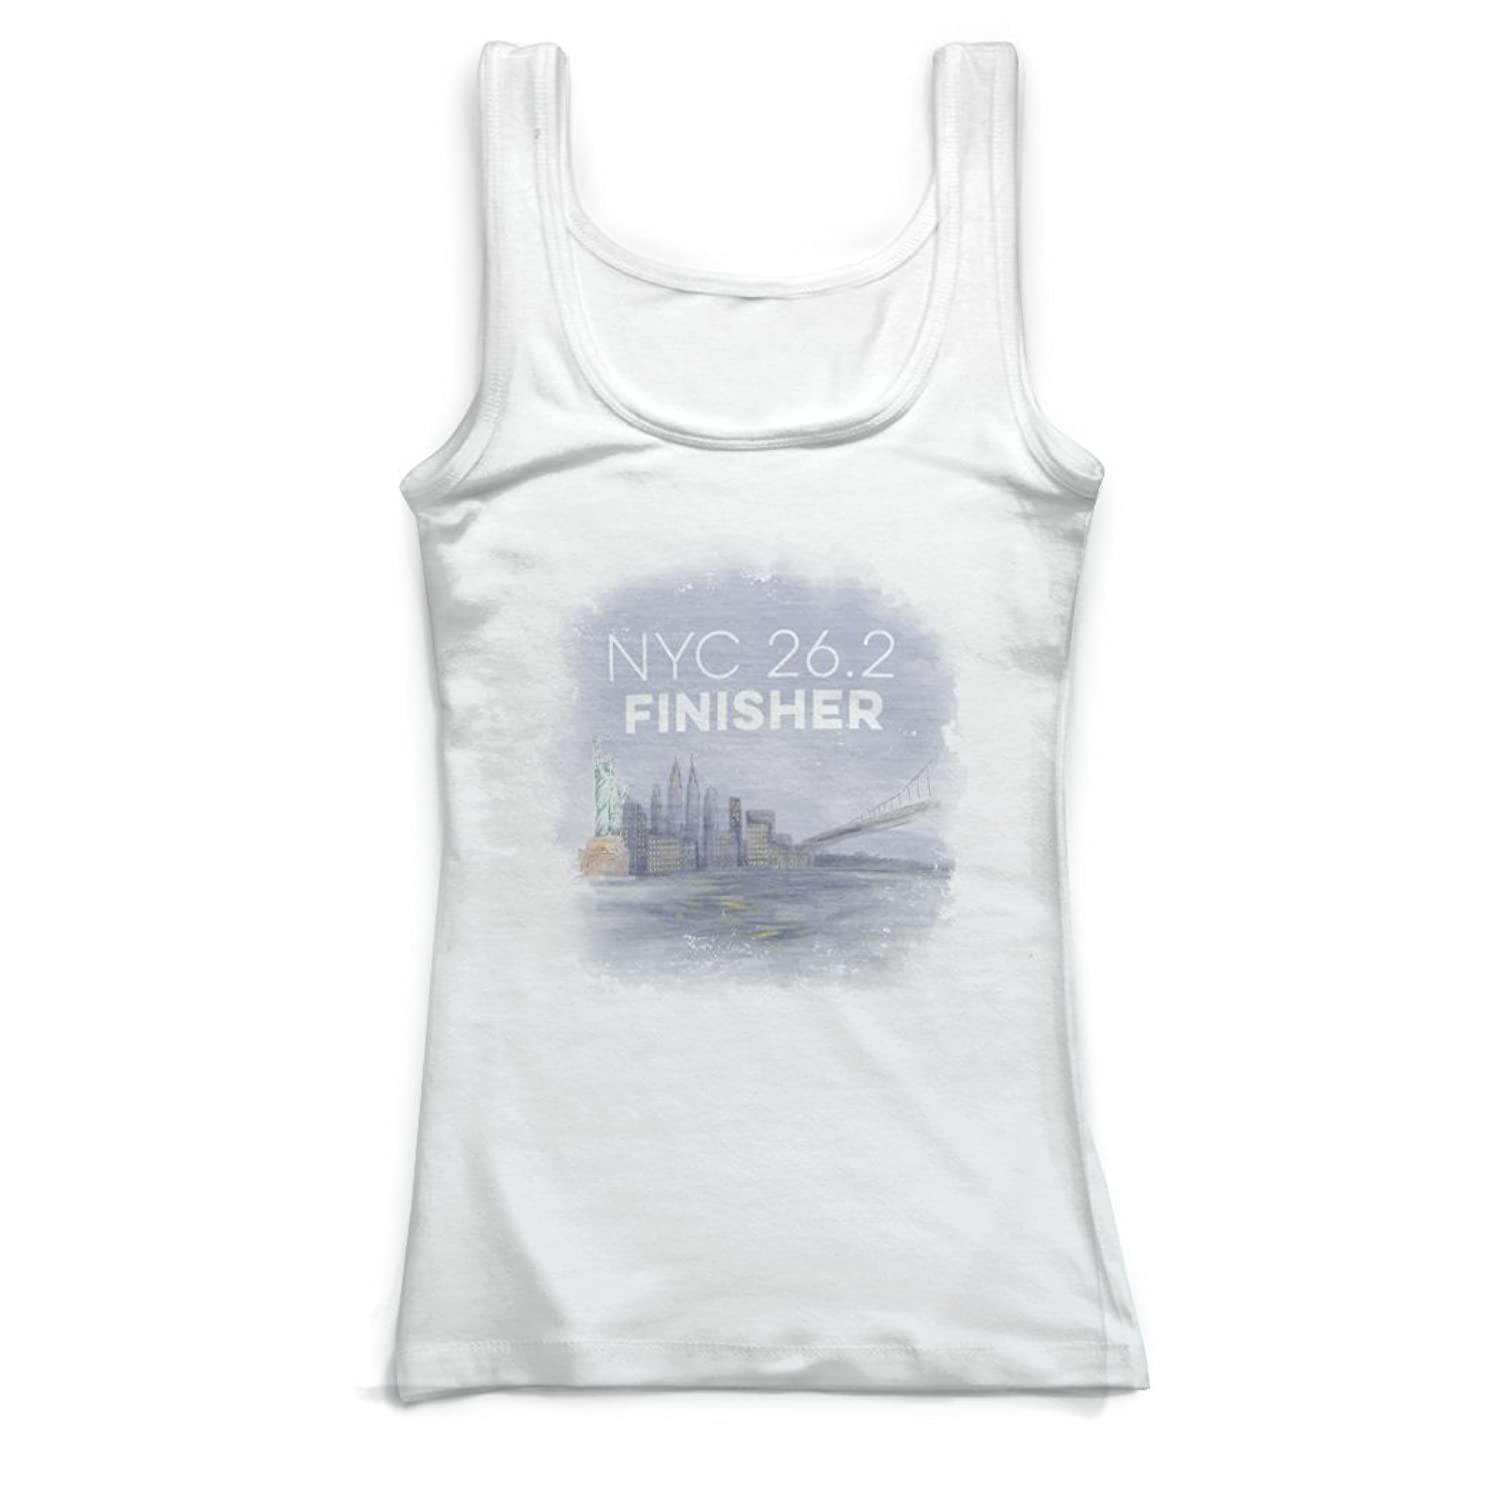 Gone For a Run Running Vintage Fitted Tank Top - New York City Sketch 26.2 Finisher